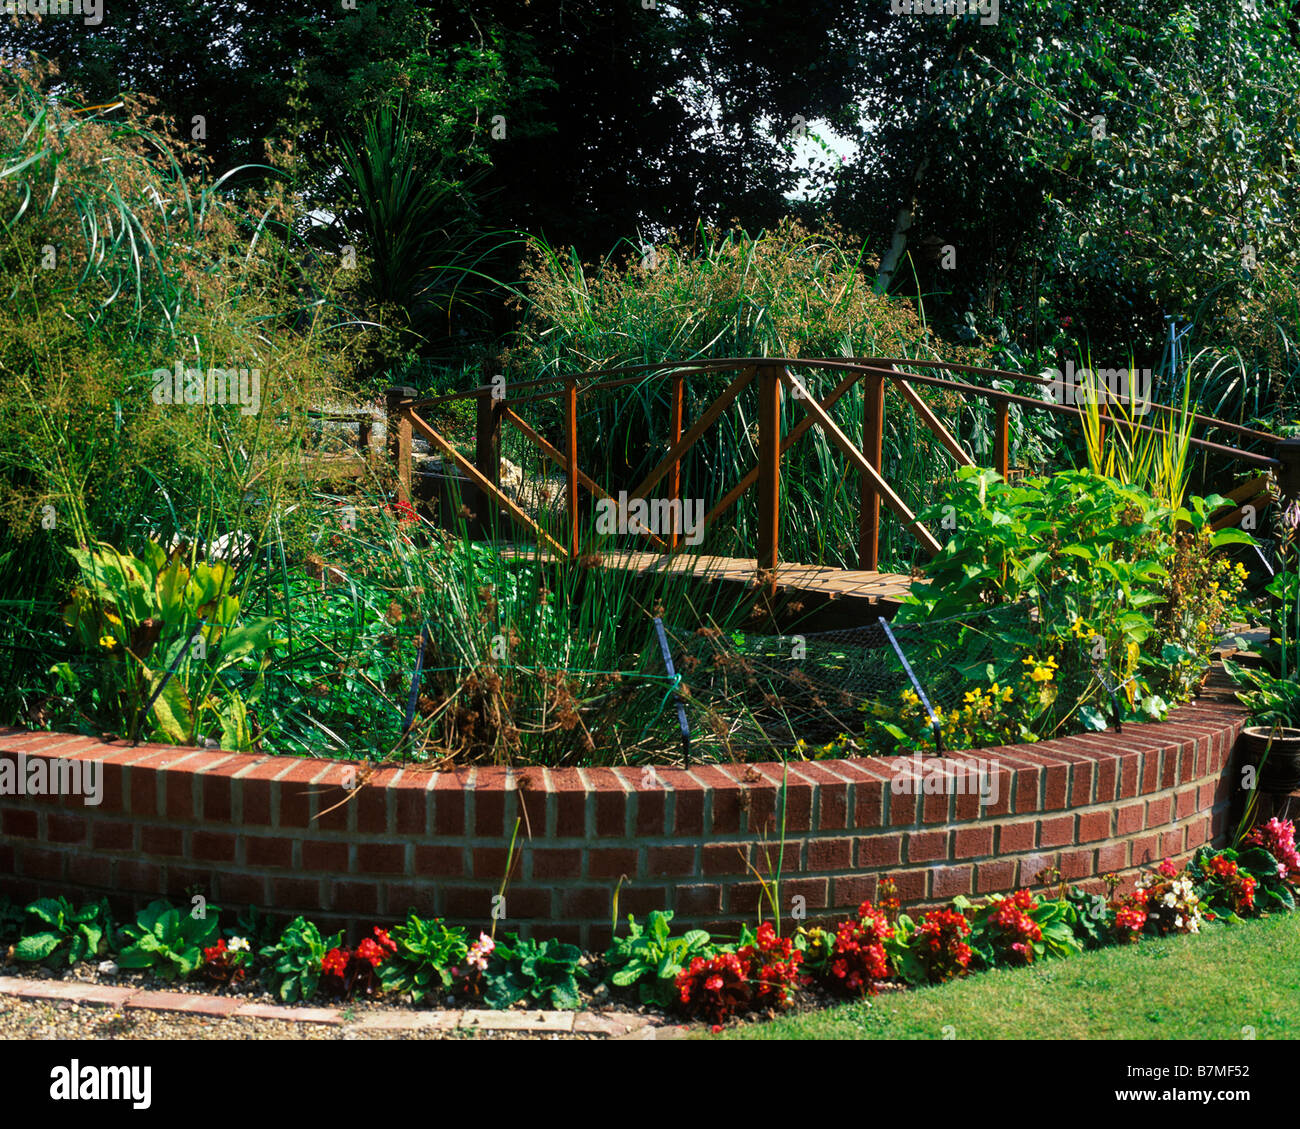 RAISED GARDEN POND WITH BRICK SURROUND AND BRIDGE Stock Photo